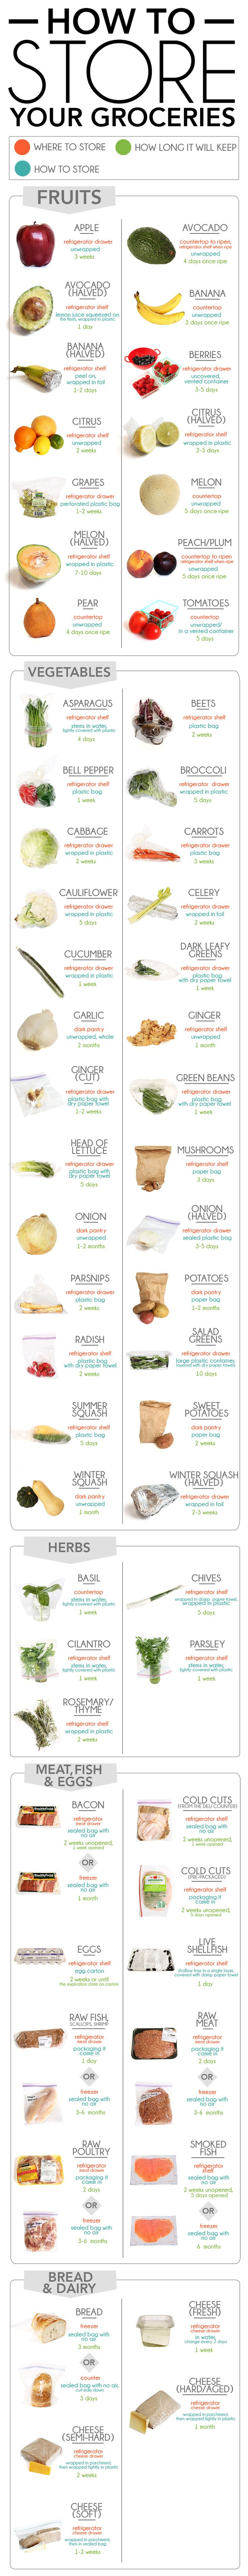 Learn how to store food with this infographic that lists a whole mix of ingredients and offers advice on how to store them correctly. >> https://www.finedininglovers.com/blog/food-drinks/how-to-store-food/